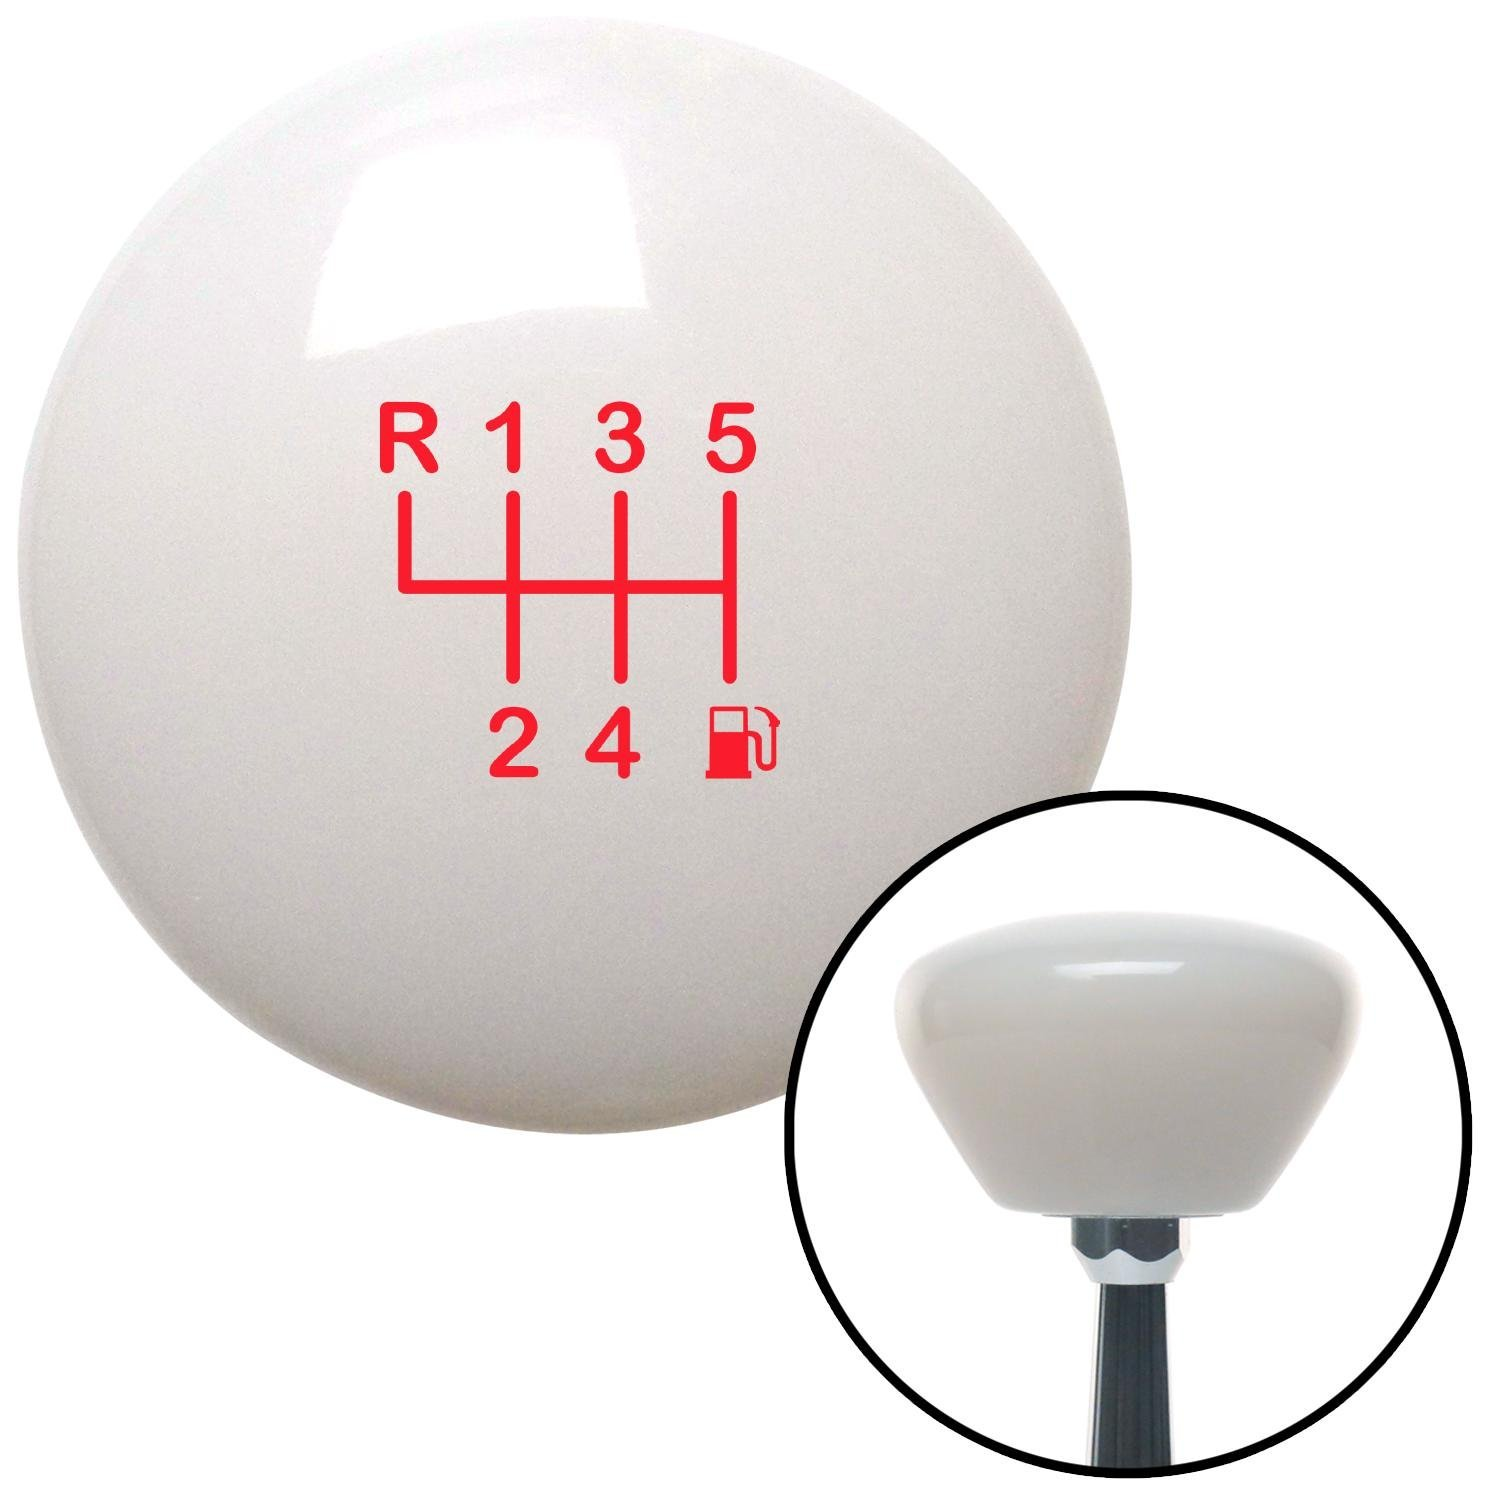 American Shifter 280492 Shift Knob Red 6 Speed Shift Pattern - Gas 20 White Retro with M16 x 1.5 Insert